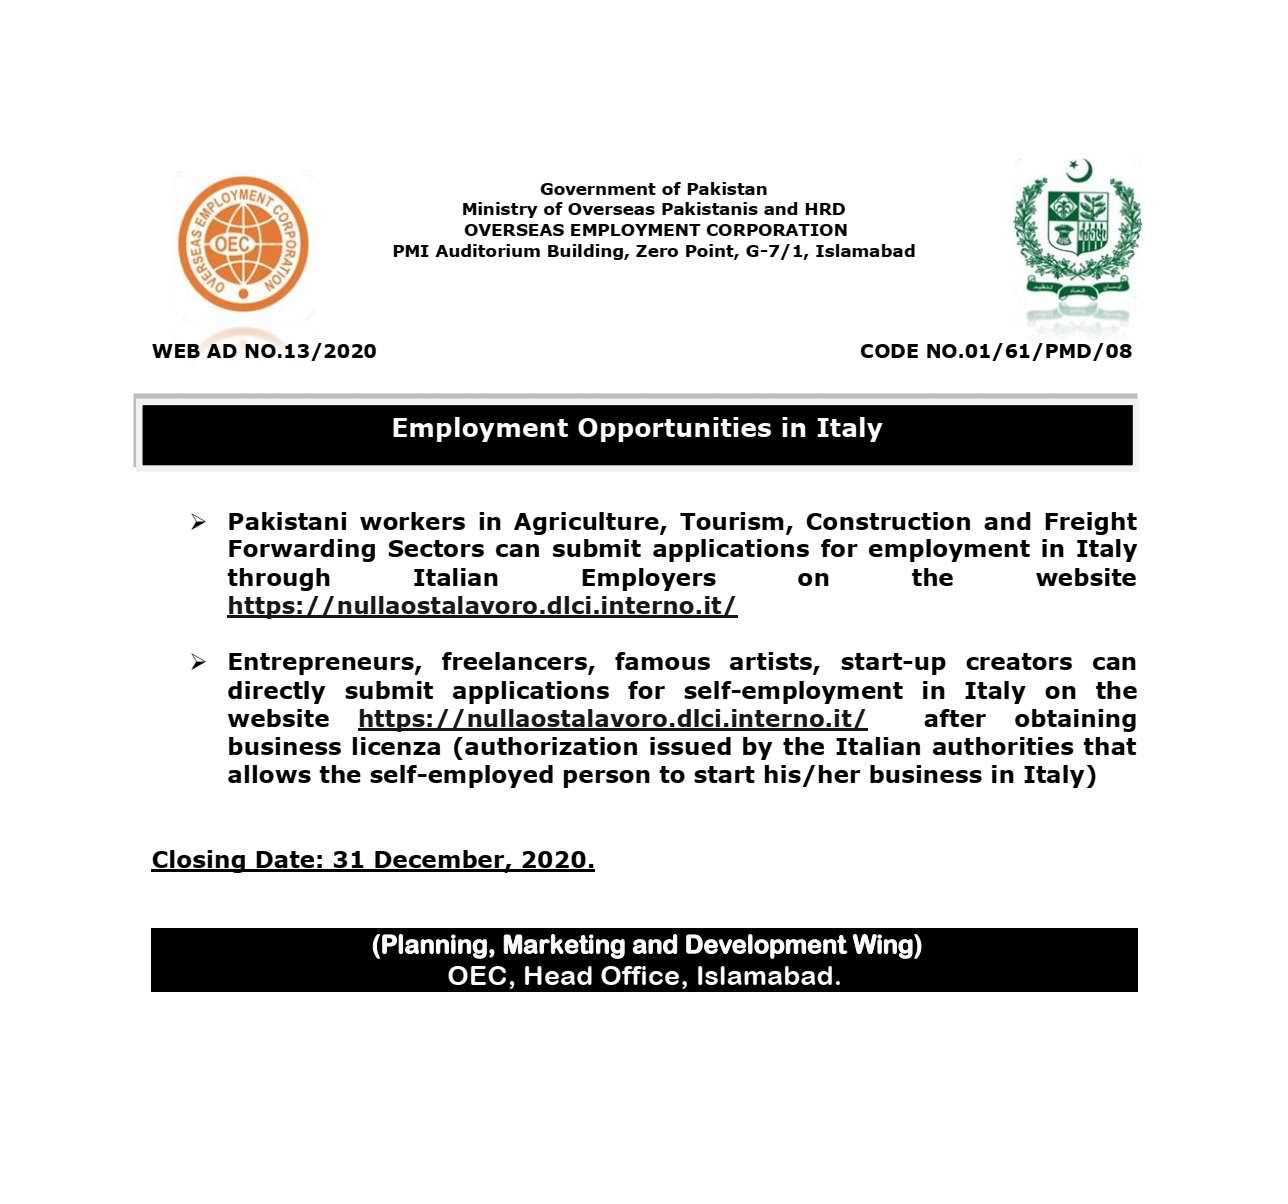 Employment Opportunities in Italy Government of Pakistan Ministry of Overseas Jobs 2020